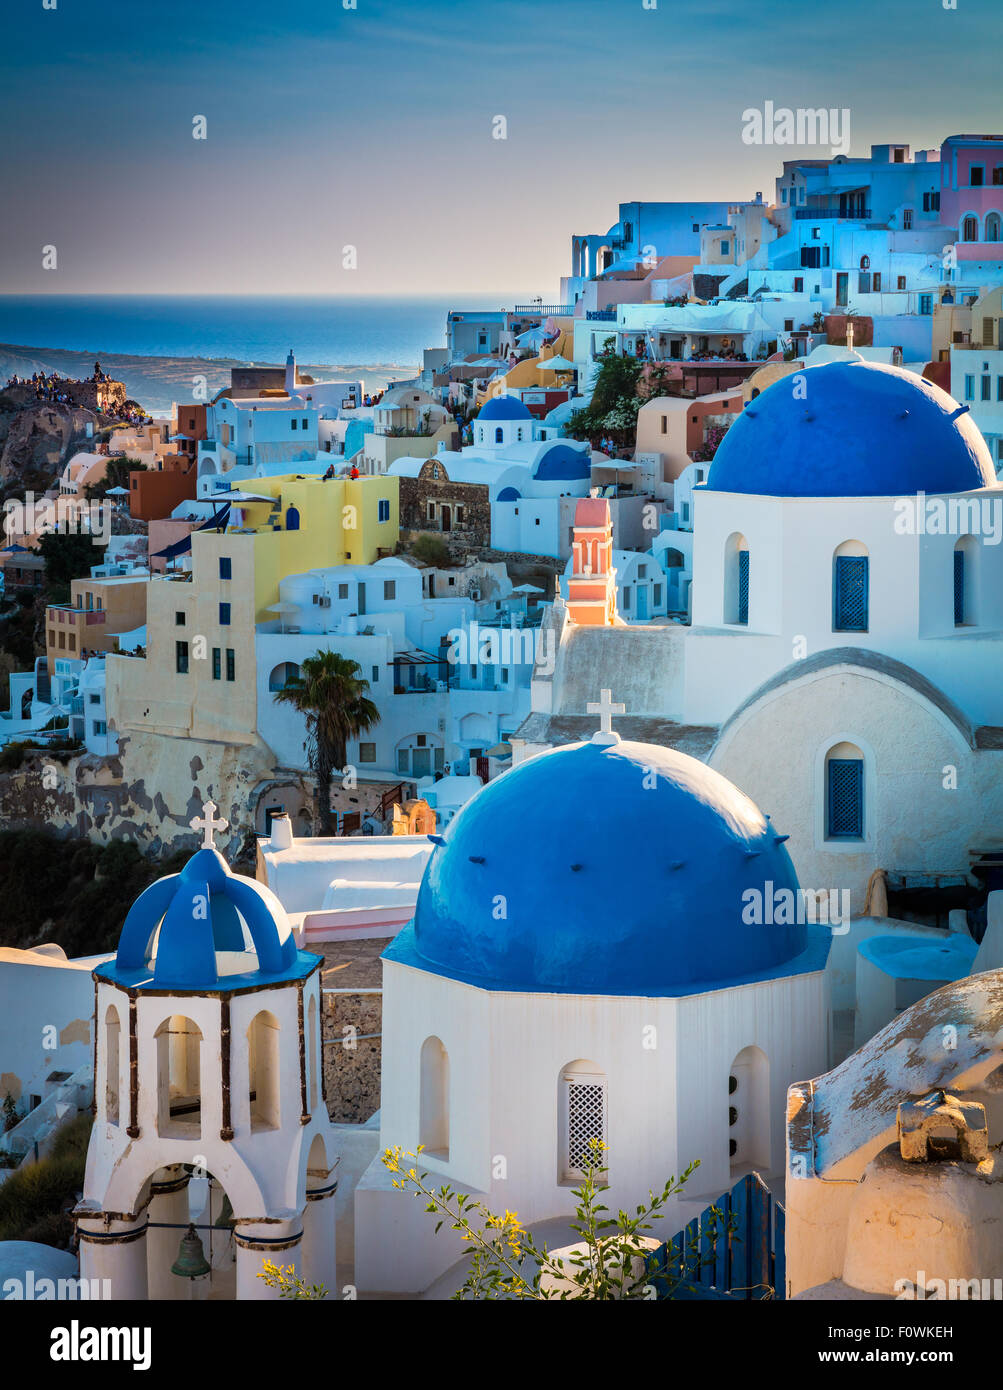 Iconic blue domed chapels in the town of Oia on the greek island Santorini (Thera) - Stock Image